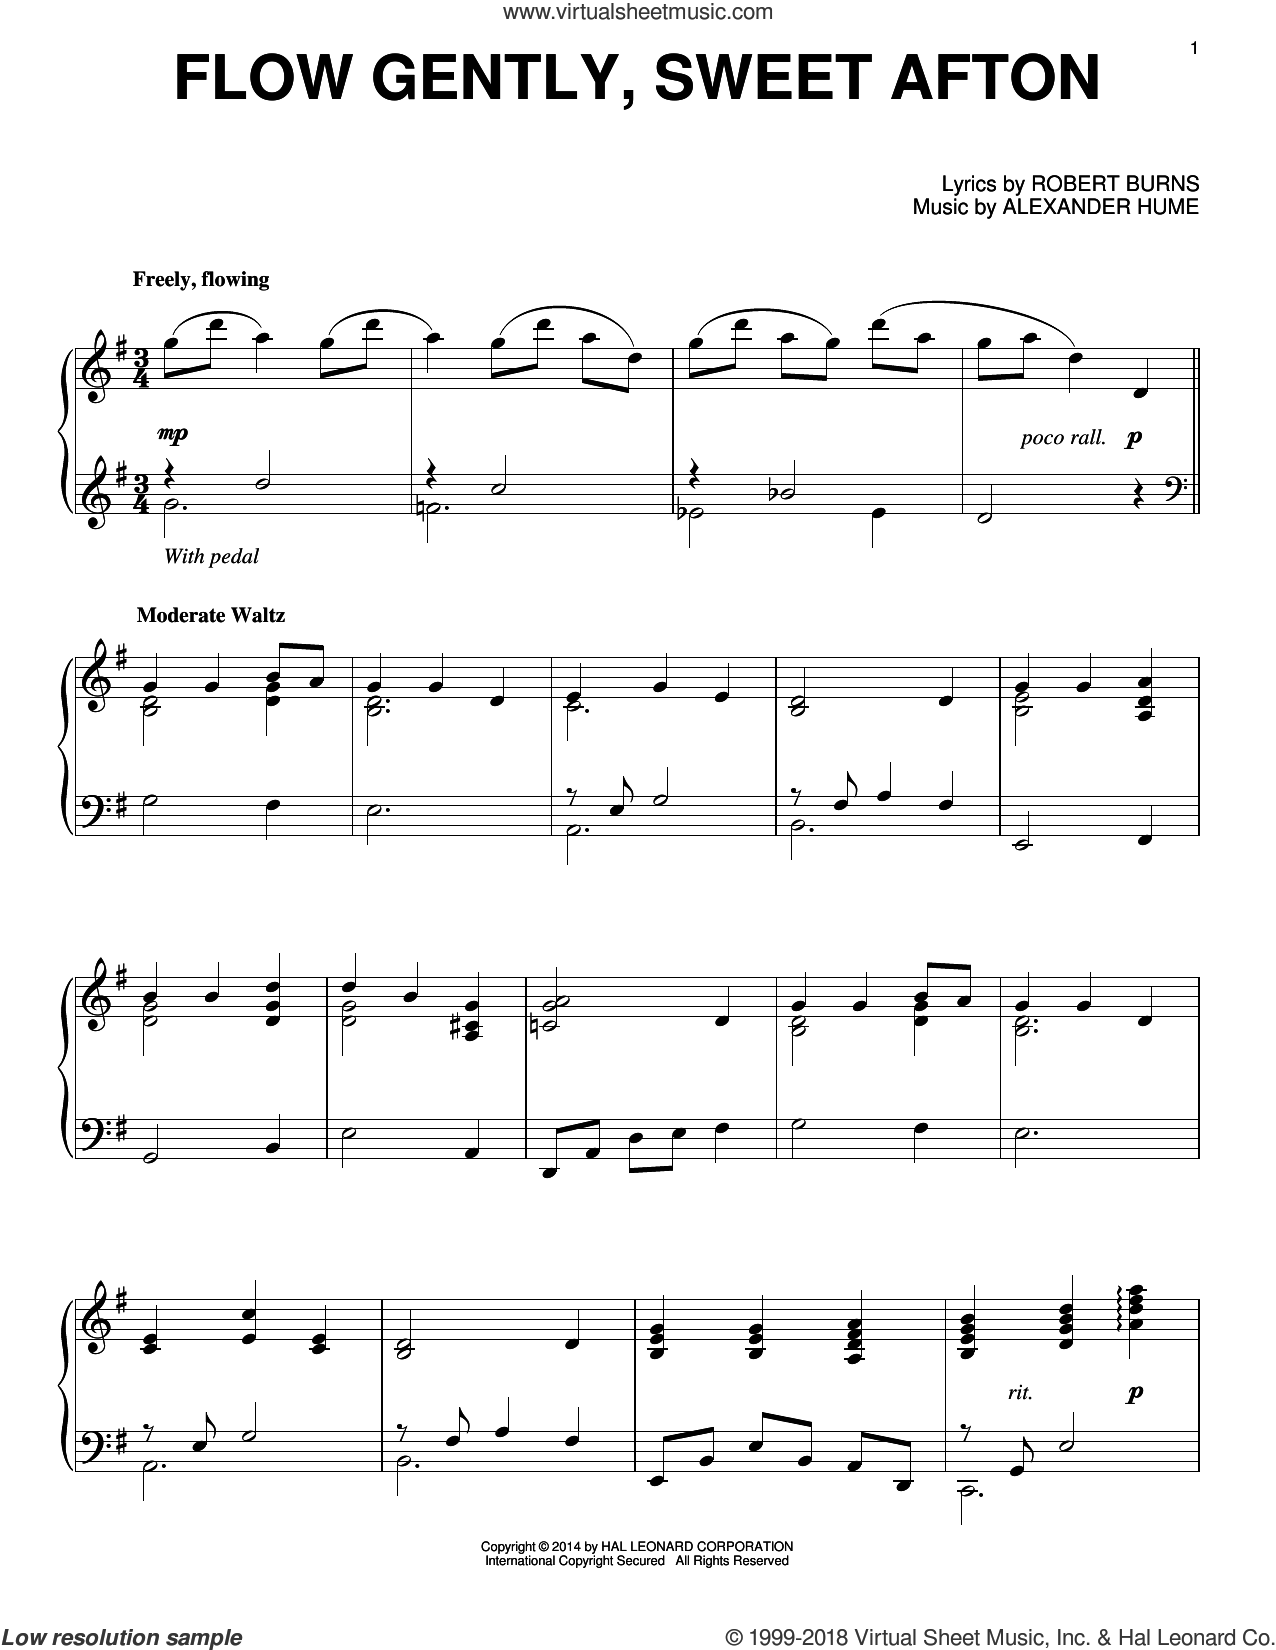 Flow Gently, Sweet Afton sheet music for piano solo by Robert Burns and Alexander Hume, intermediate skill level